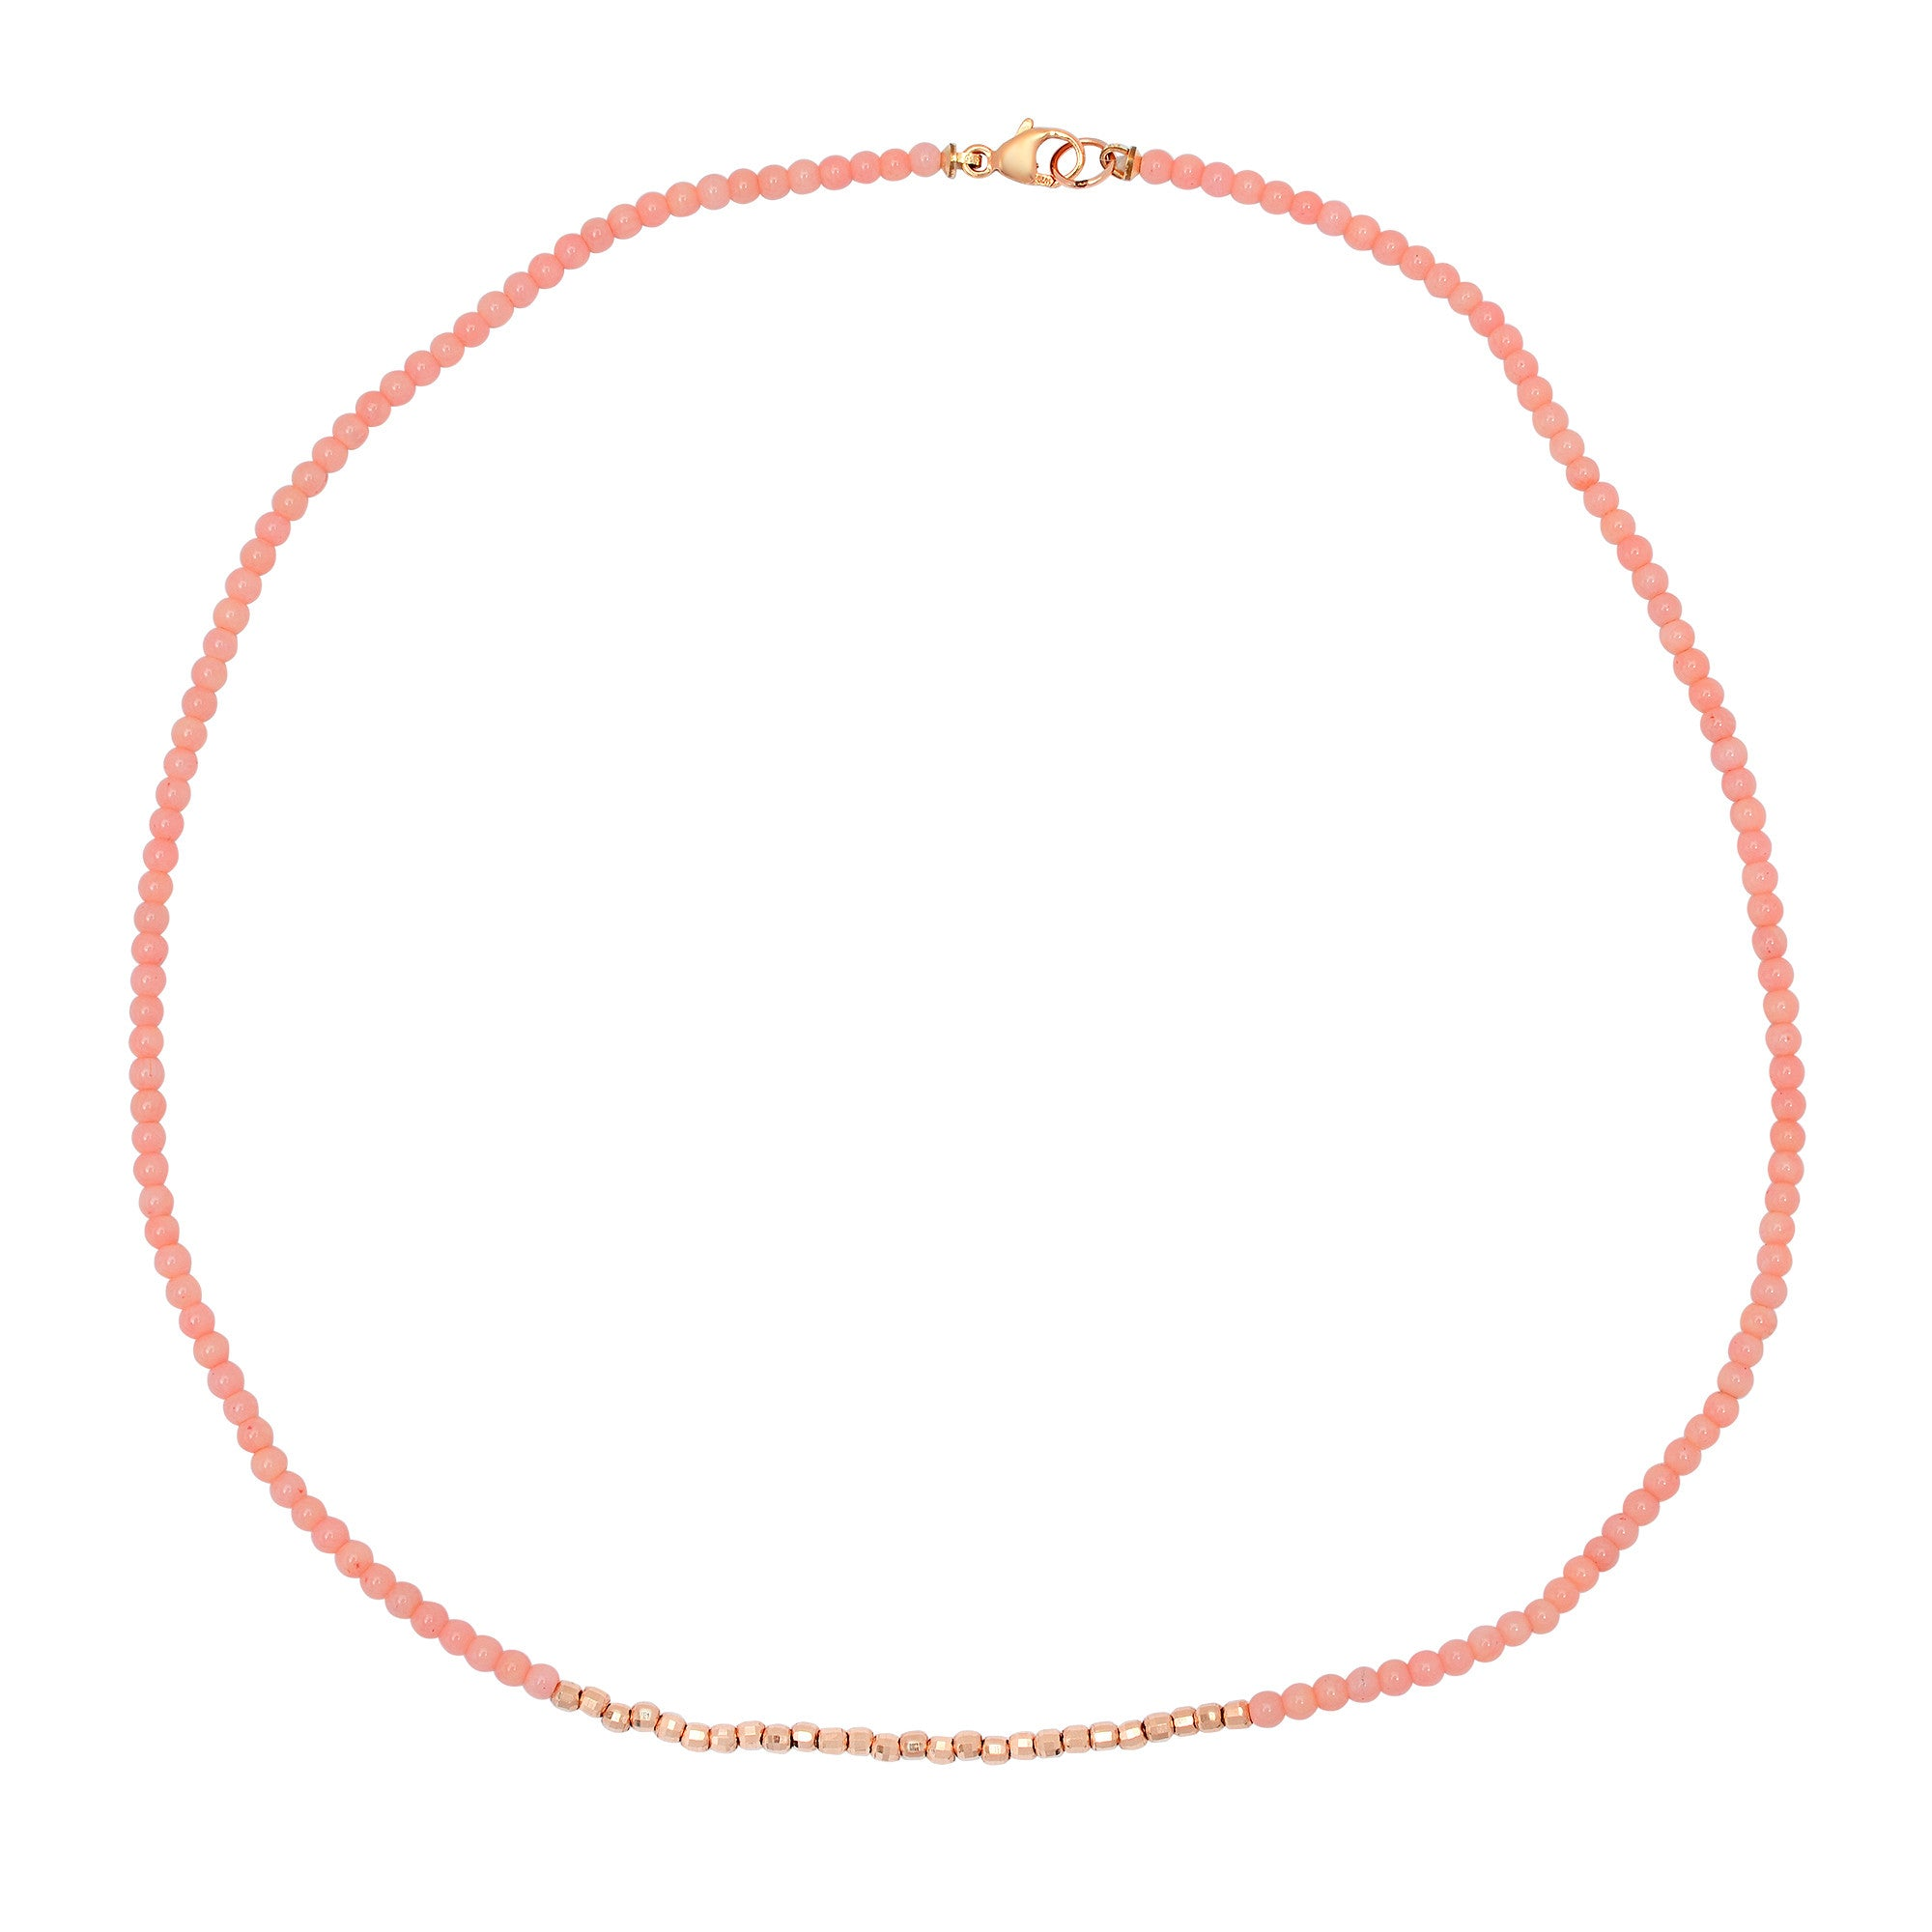 Coral Necklace with Gold Beads